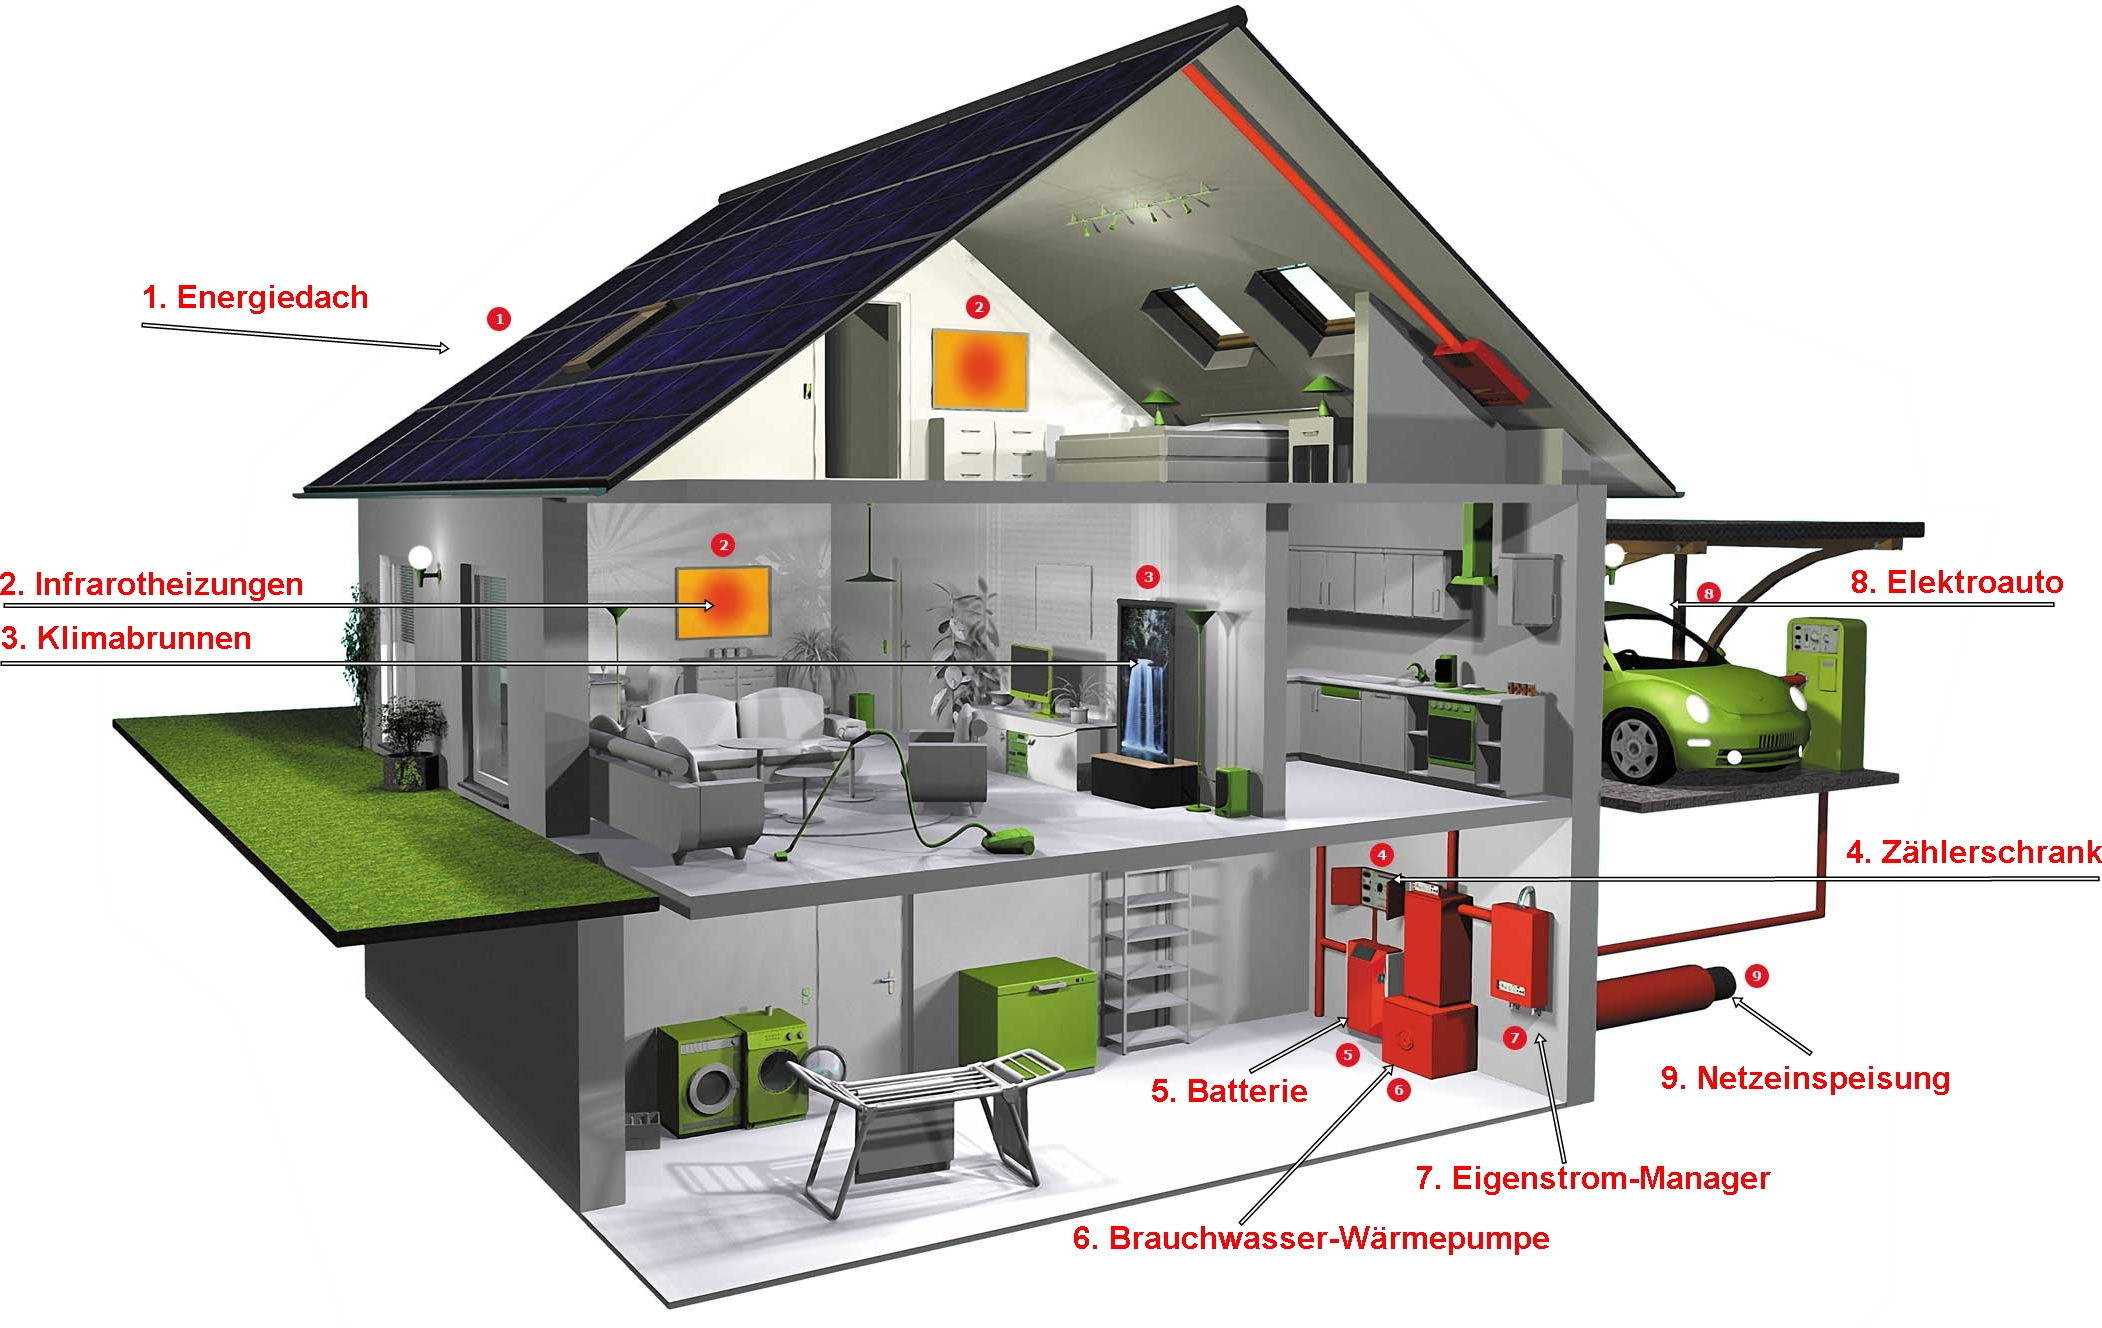 photovoltaik und infrarotheizungen f r das energiesparhaus konzept infrarotheizungtest. Black Bedroom Furniture Sets. Home Design Ideas